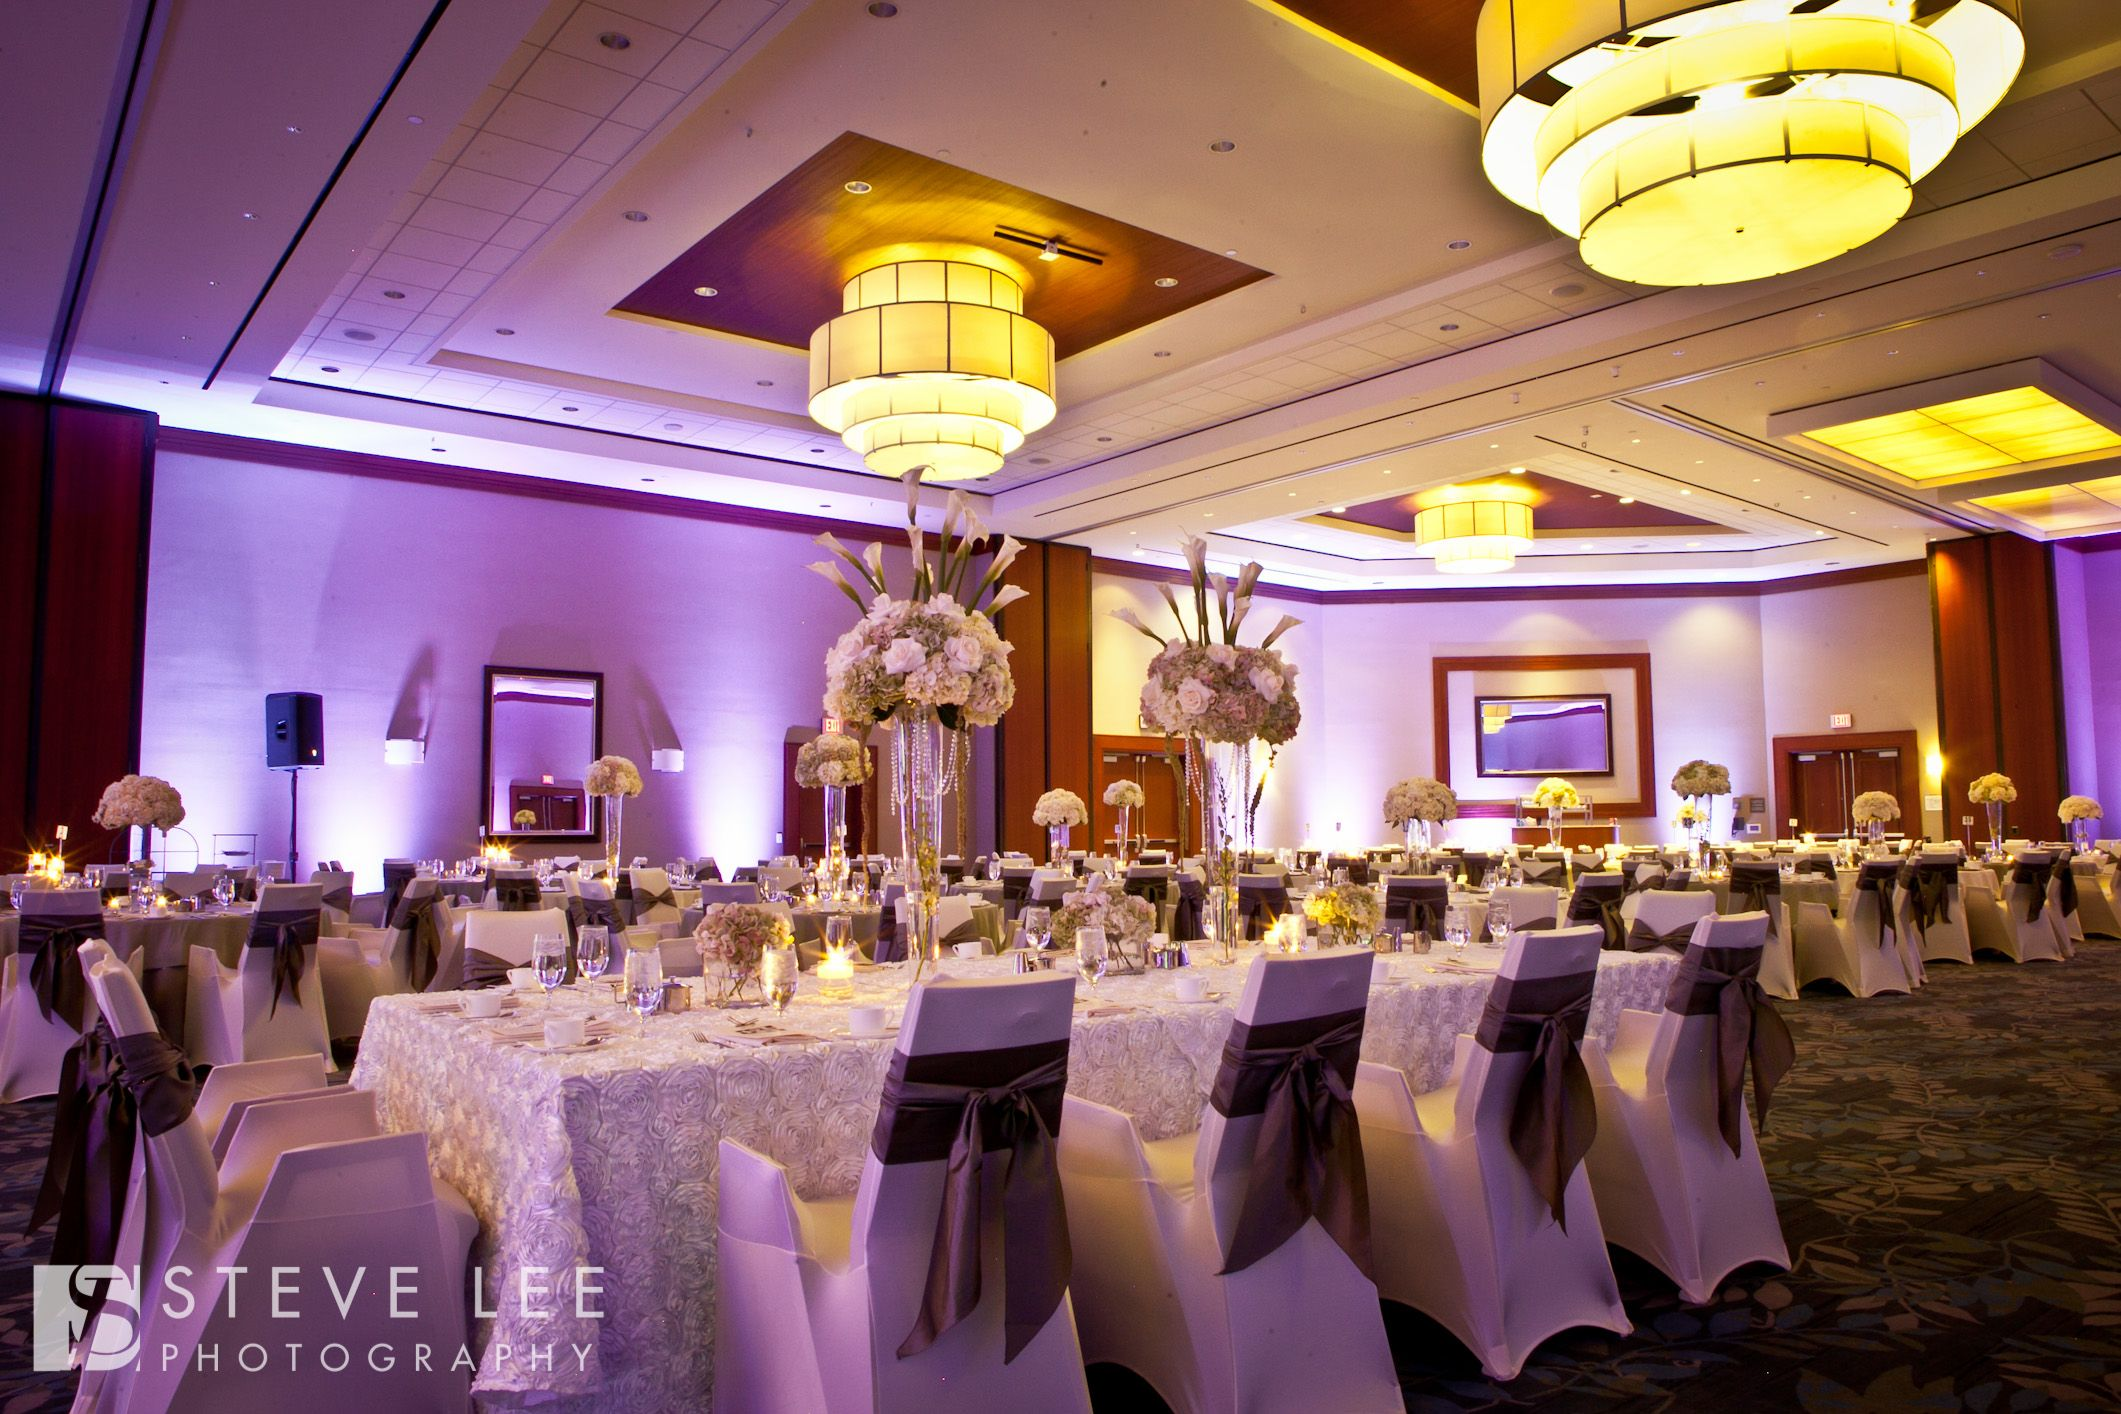 White spandex chair covers and a simple sash tie create a clean look for this ballroom event at The Westin Memorial City in Houston, Texas